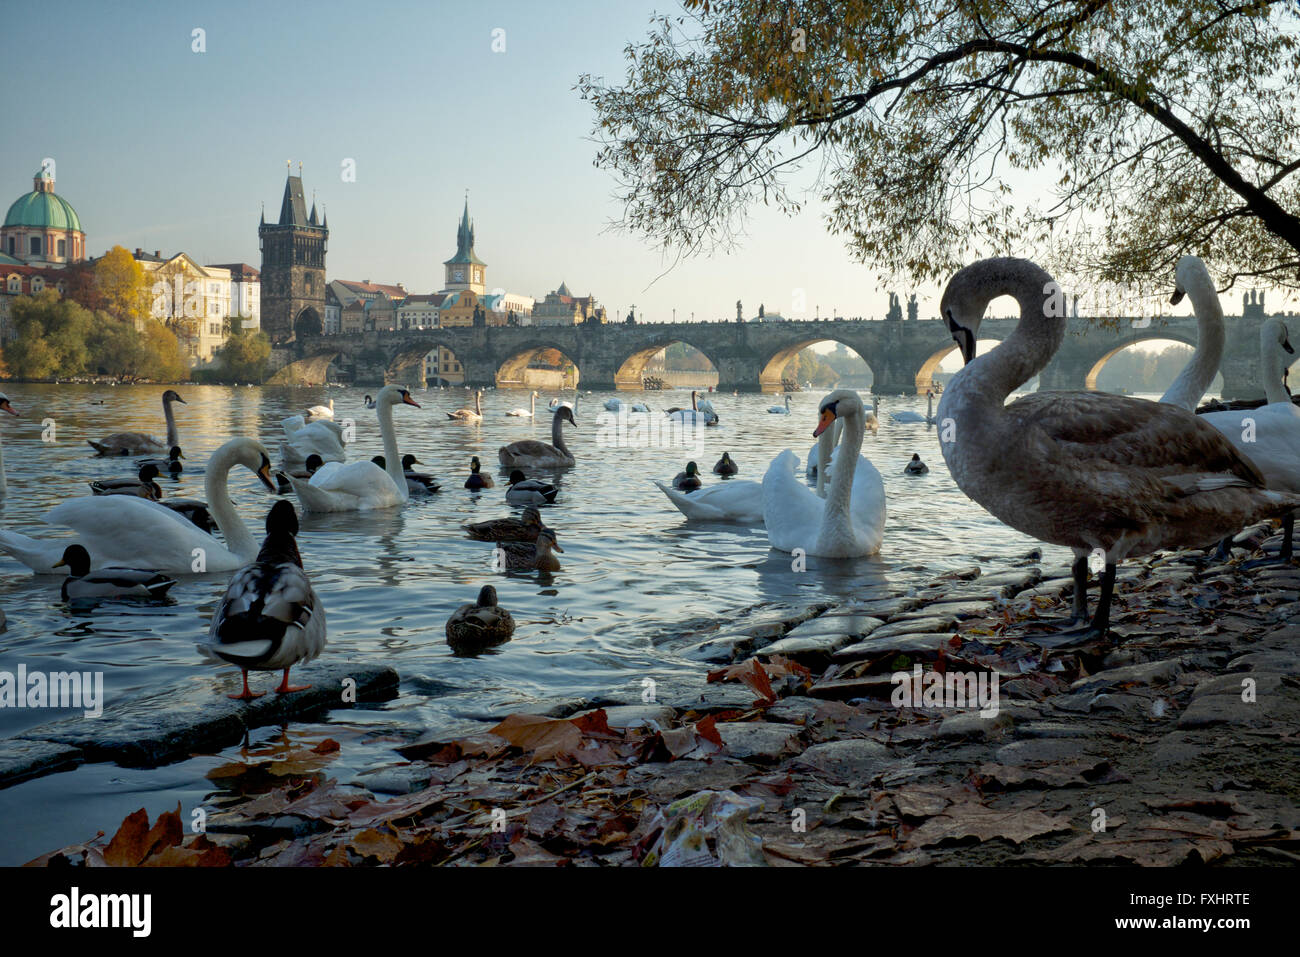 The famous swans of the Vltava River, Prague - Stock Image